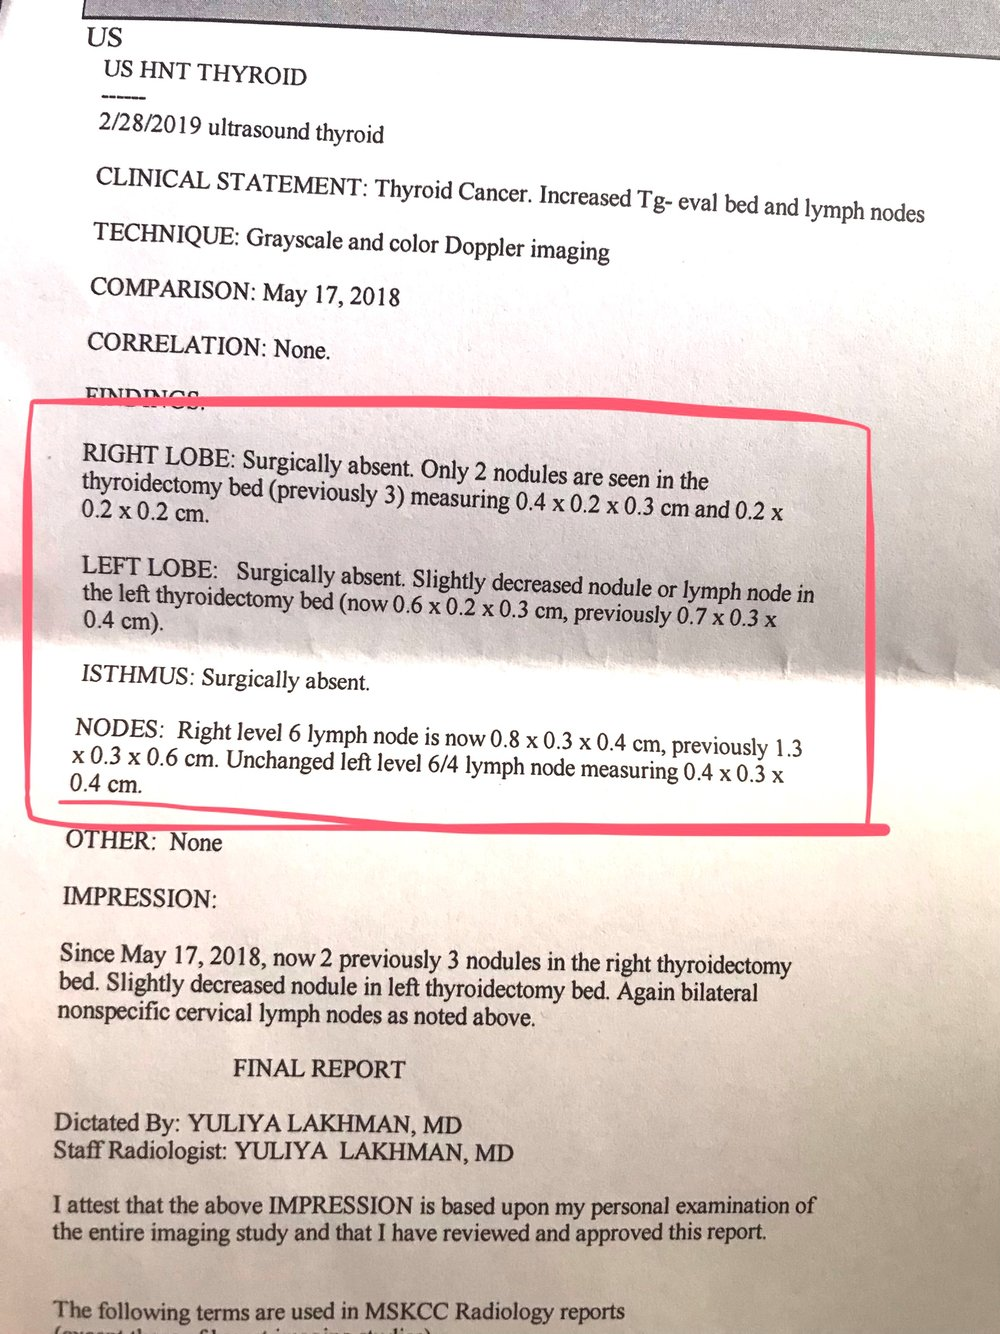 Snapshot of my Medical Report. Basically… EVERYTHING IS SHRINKING!!! WITHOUT THE USE OF TOXIC THERAPIES! WAHOOOO!!!! TAKE THAT, MODERN MEDICINE!!!!